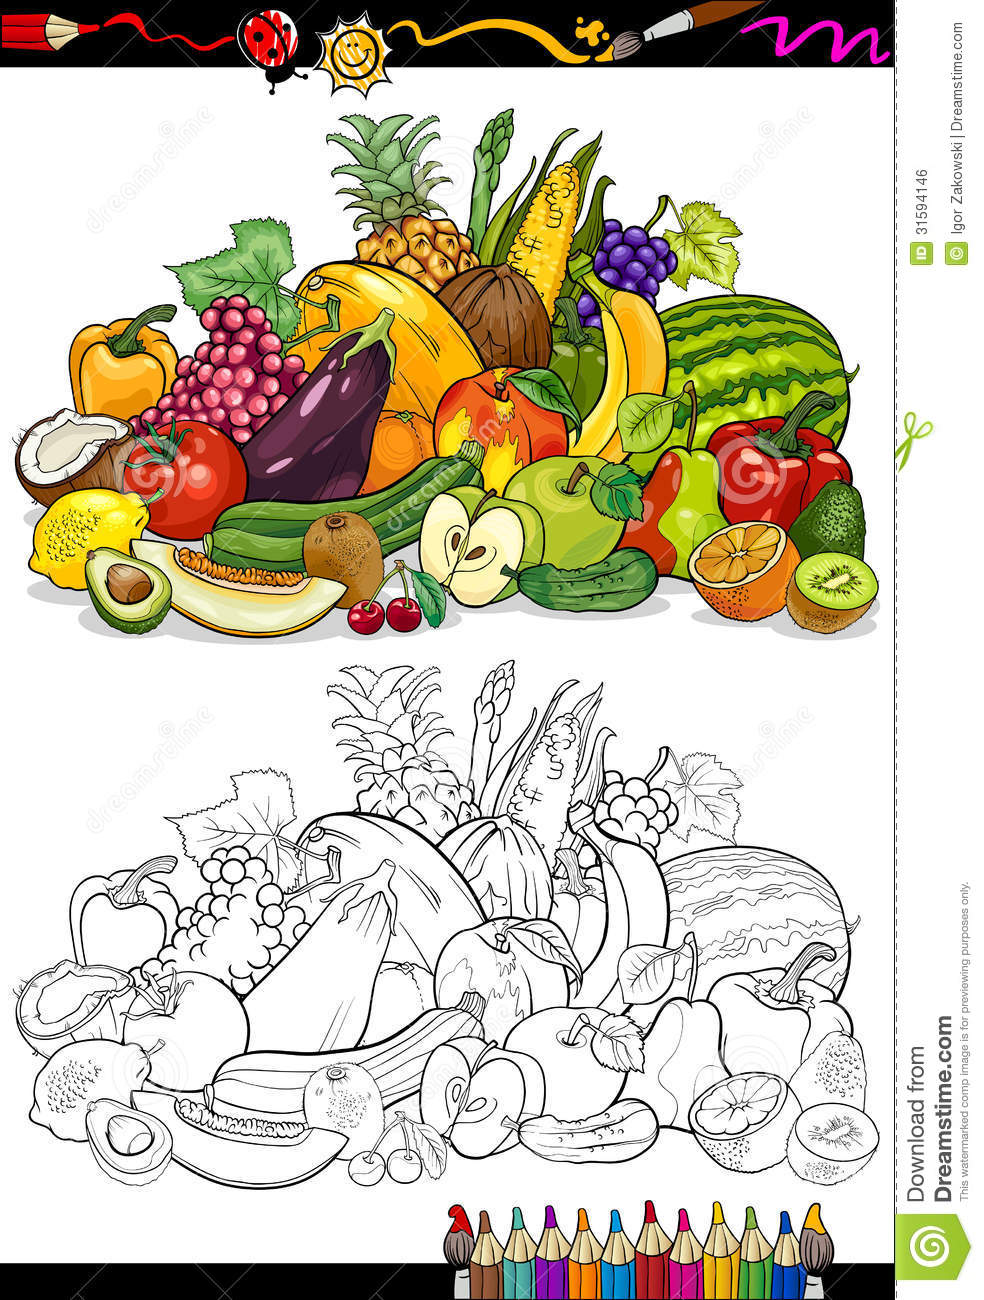 Fruits And Vegetables For Coloring Book Royalty Free Stock